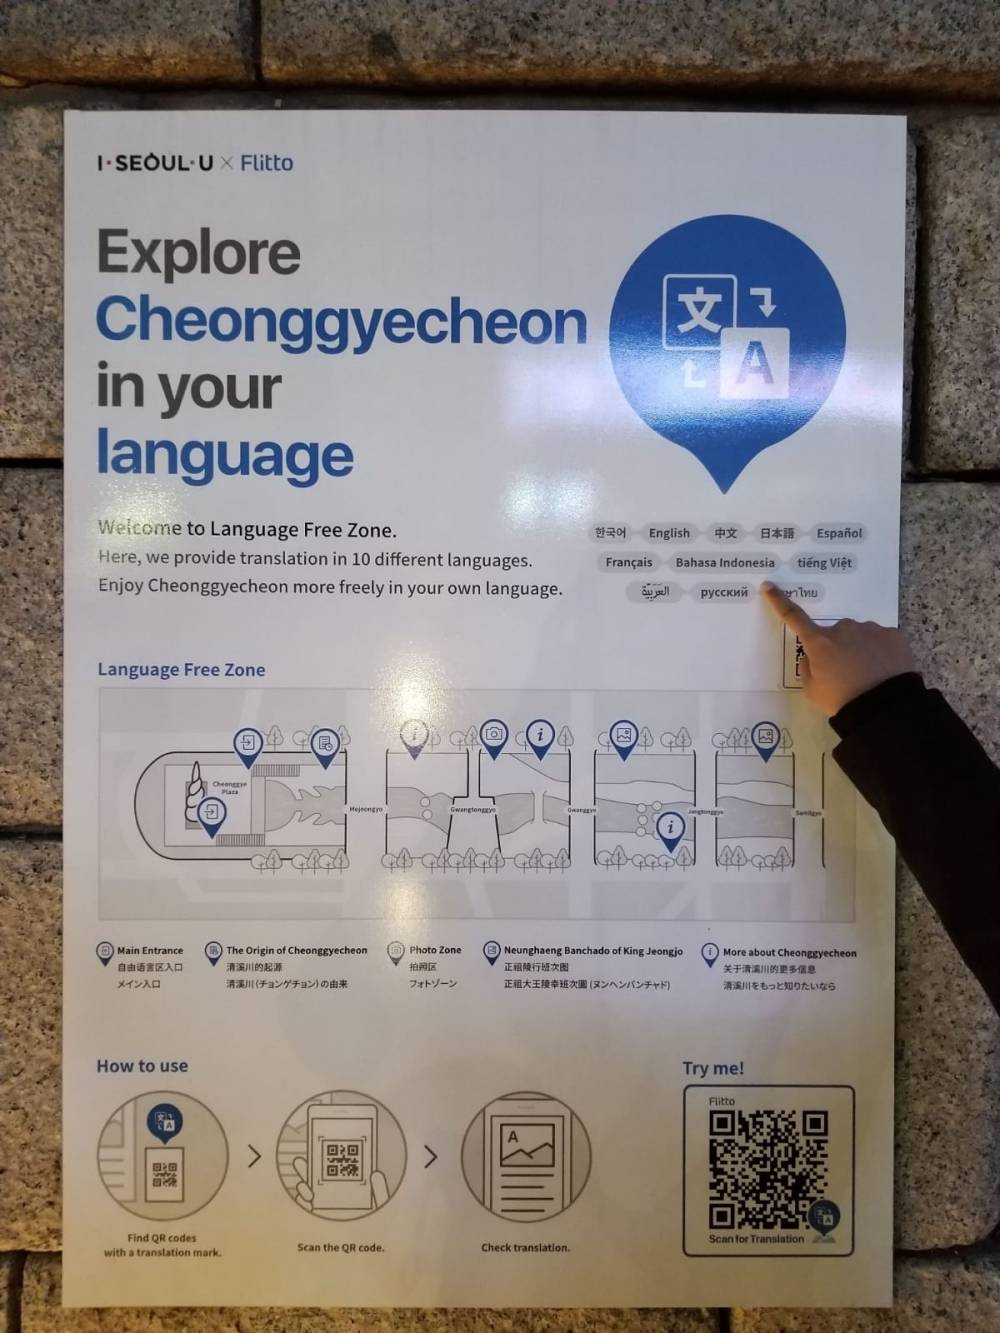 Explore Cheonggyecheon in Your Language